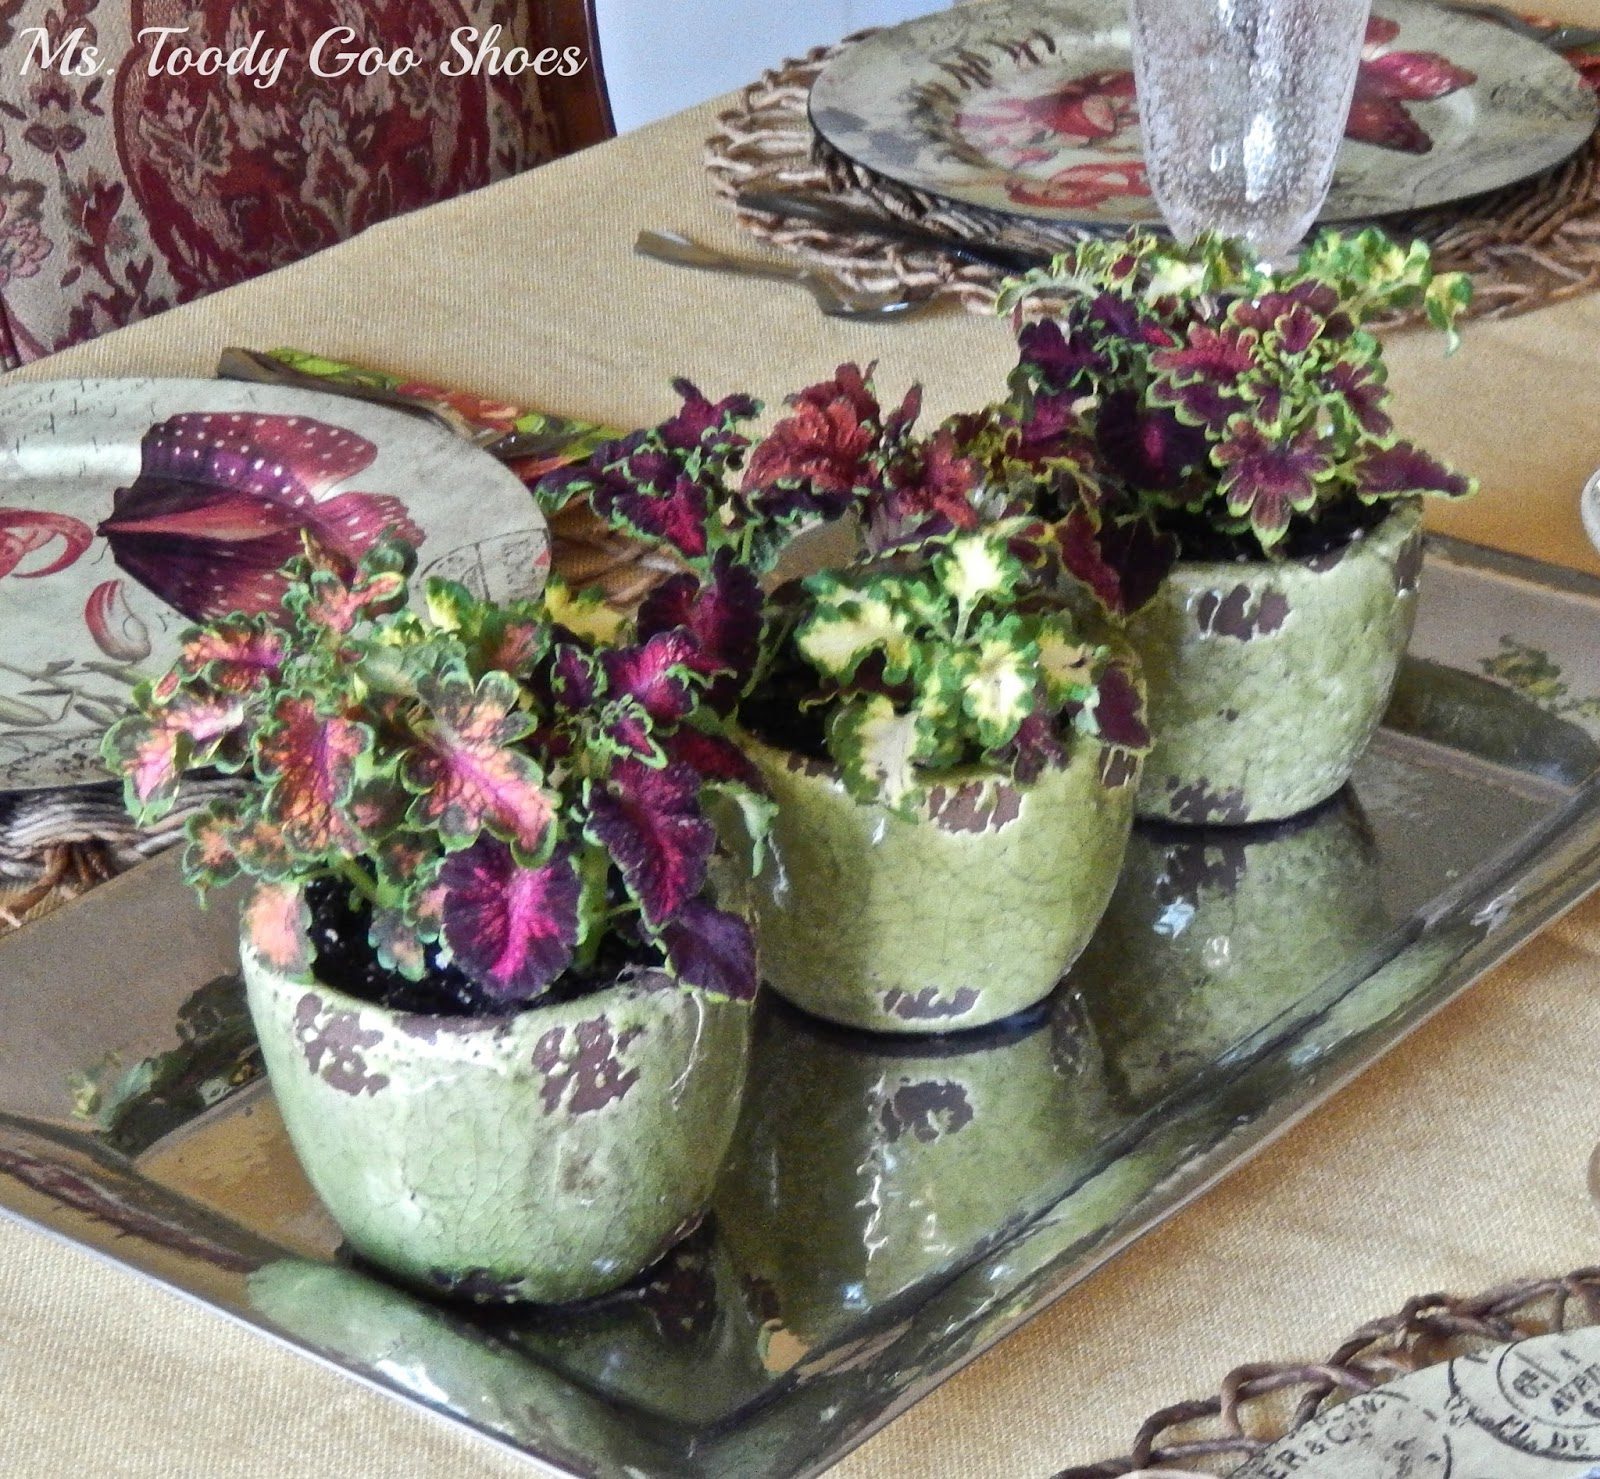 Cheap and Cheerful Flower Pot Centerpiece --- Ms. Toody Goo Shoes